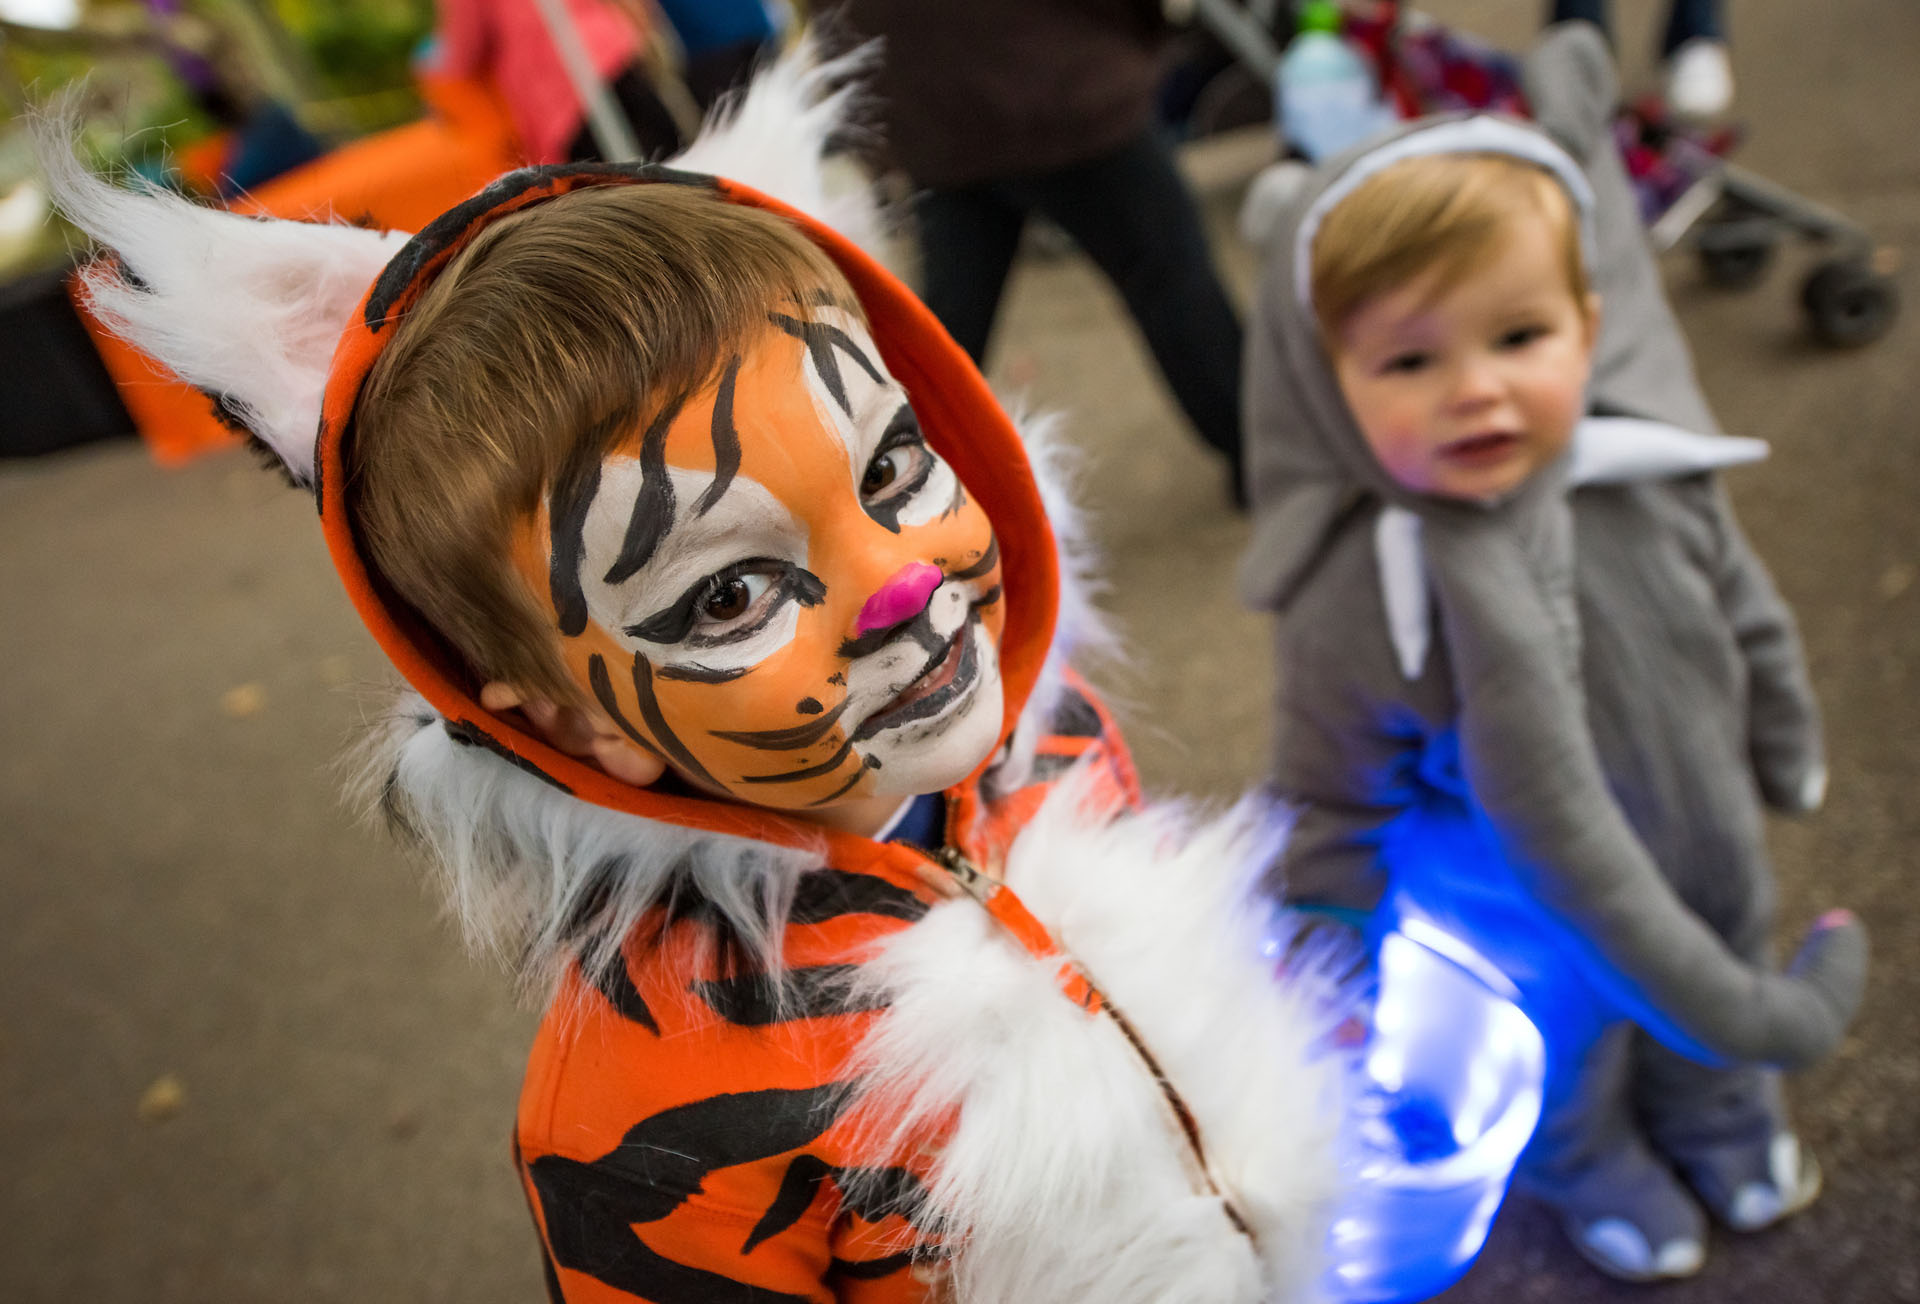 Cleveland Metroparks Zoo Announces Trick-or-Treat Fest presented by Citizens